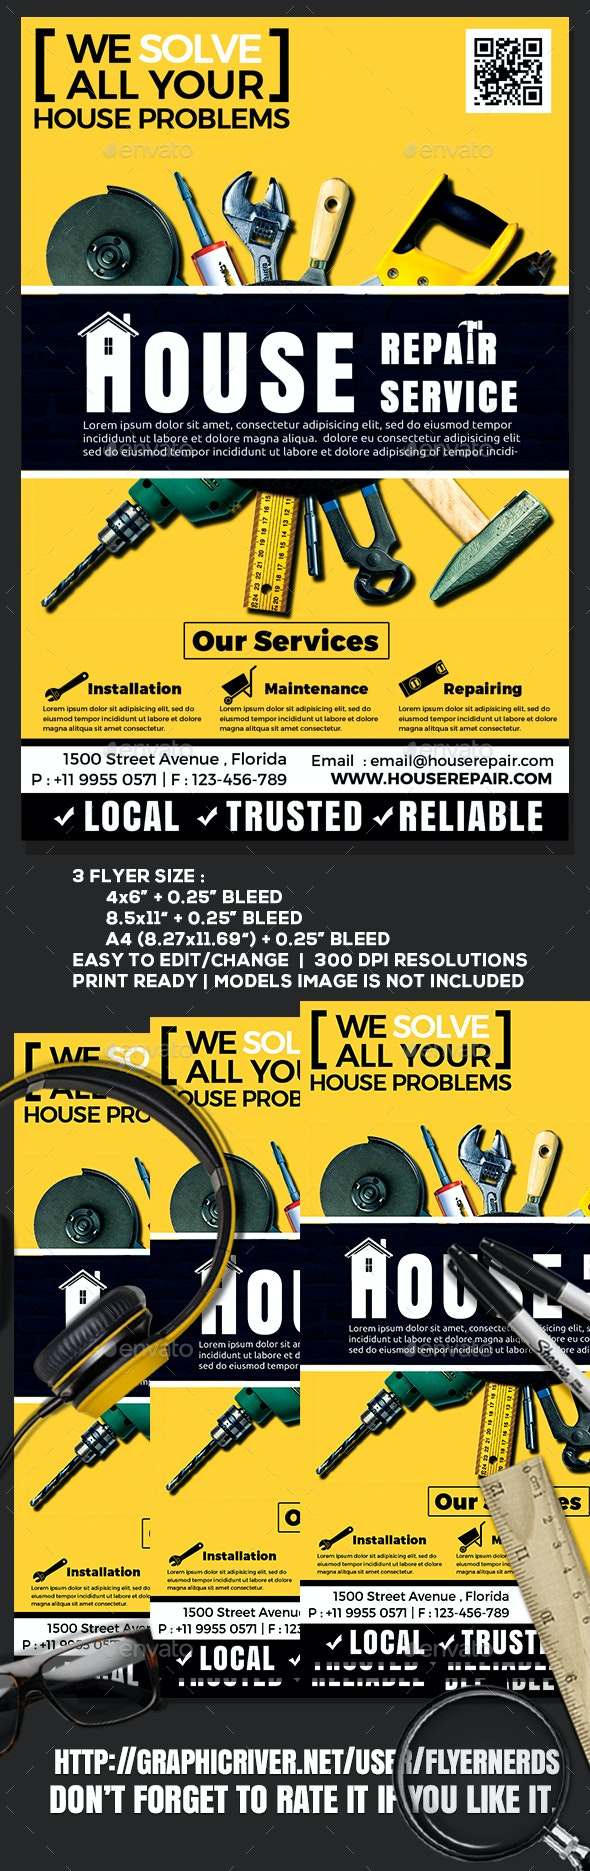 House Repair Company Service Flyer - Commerce Flyers